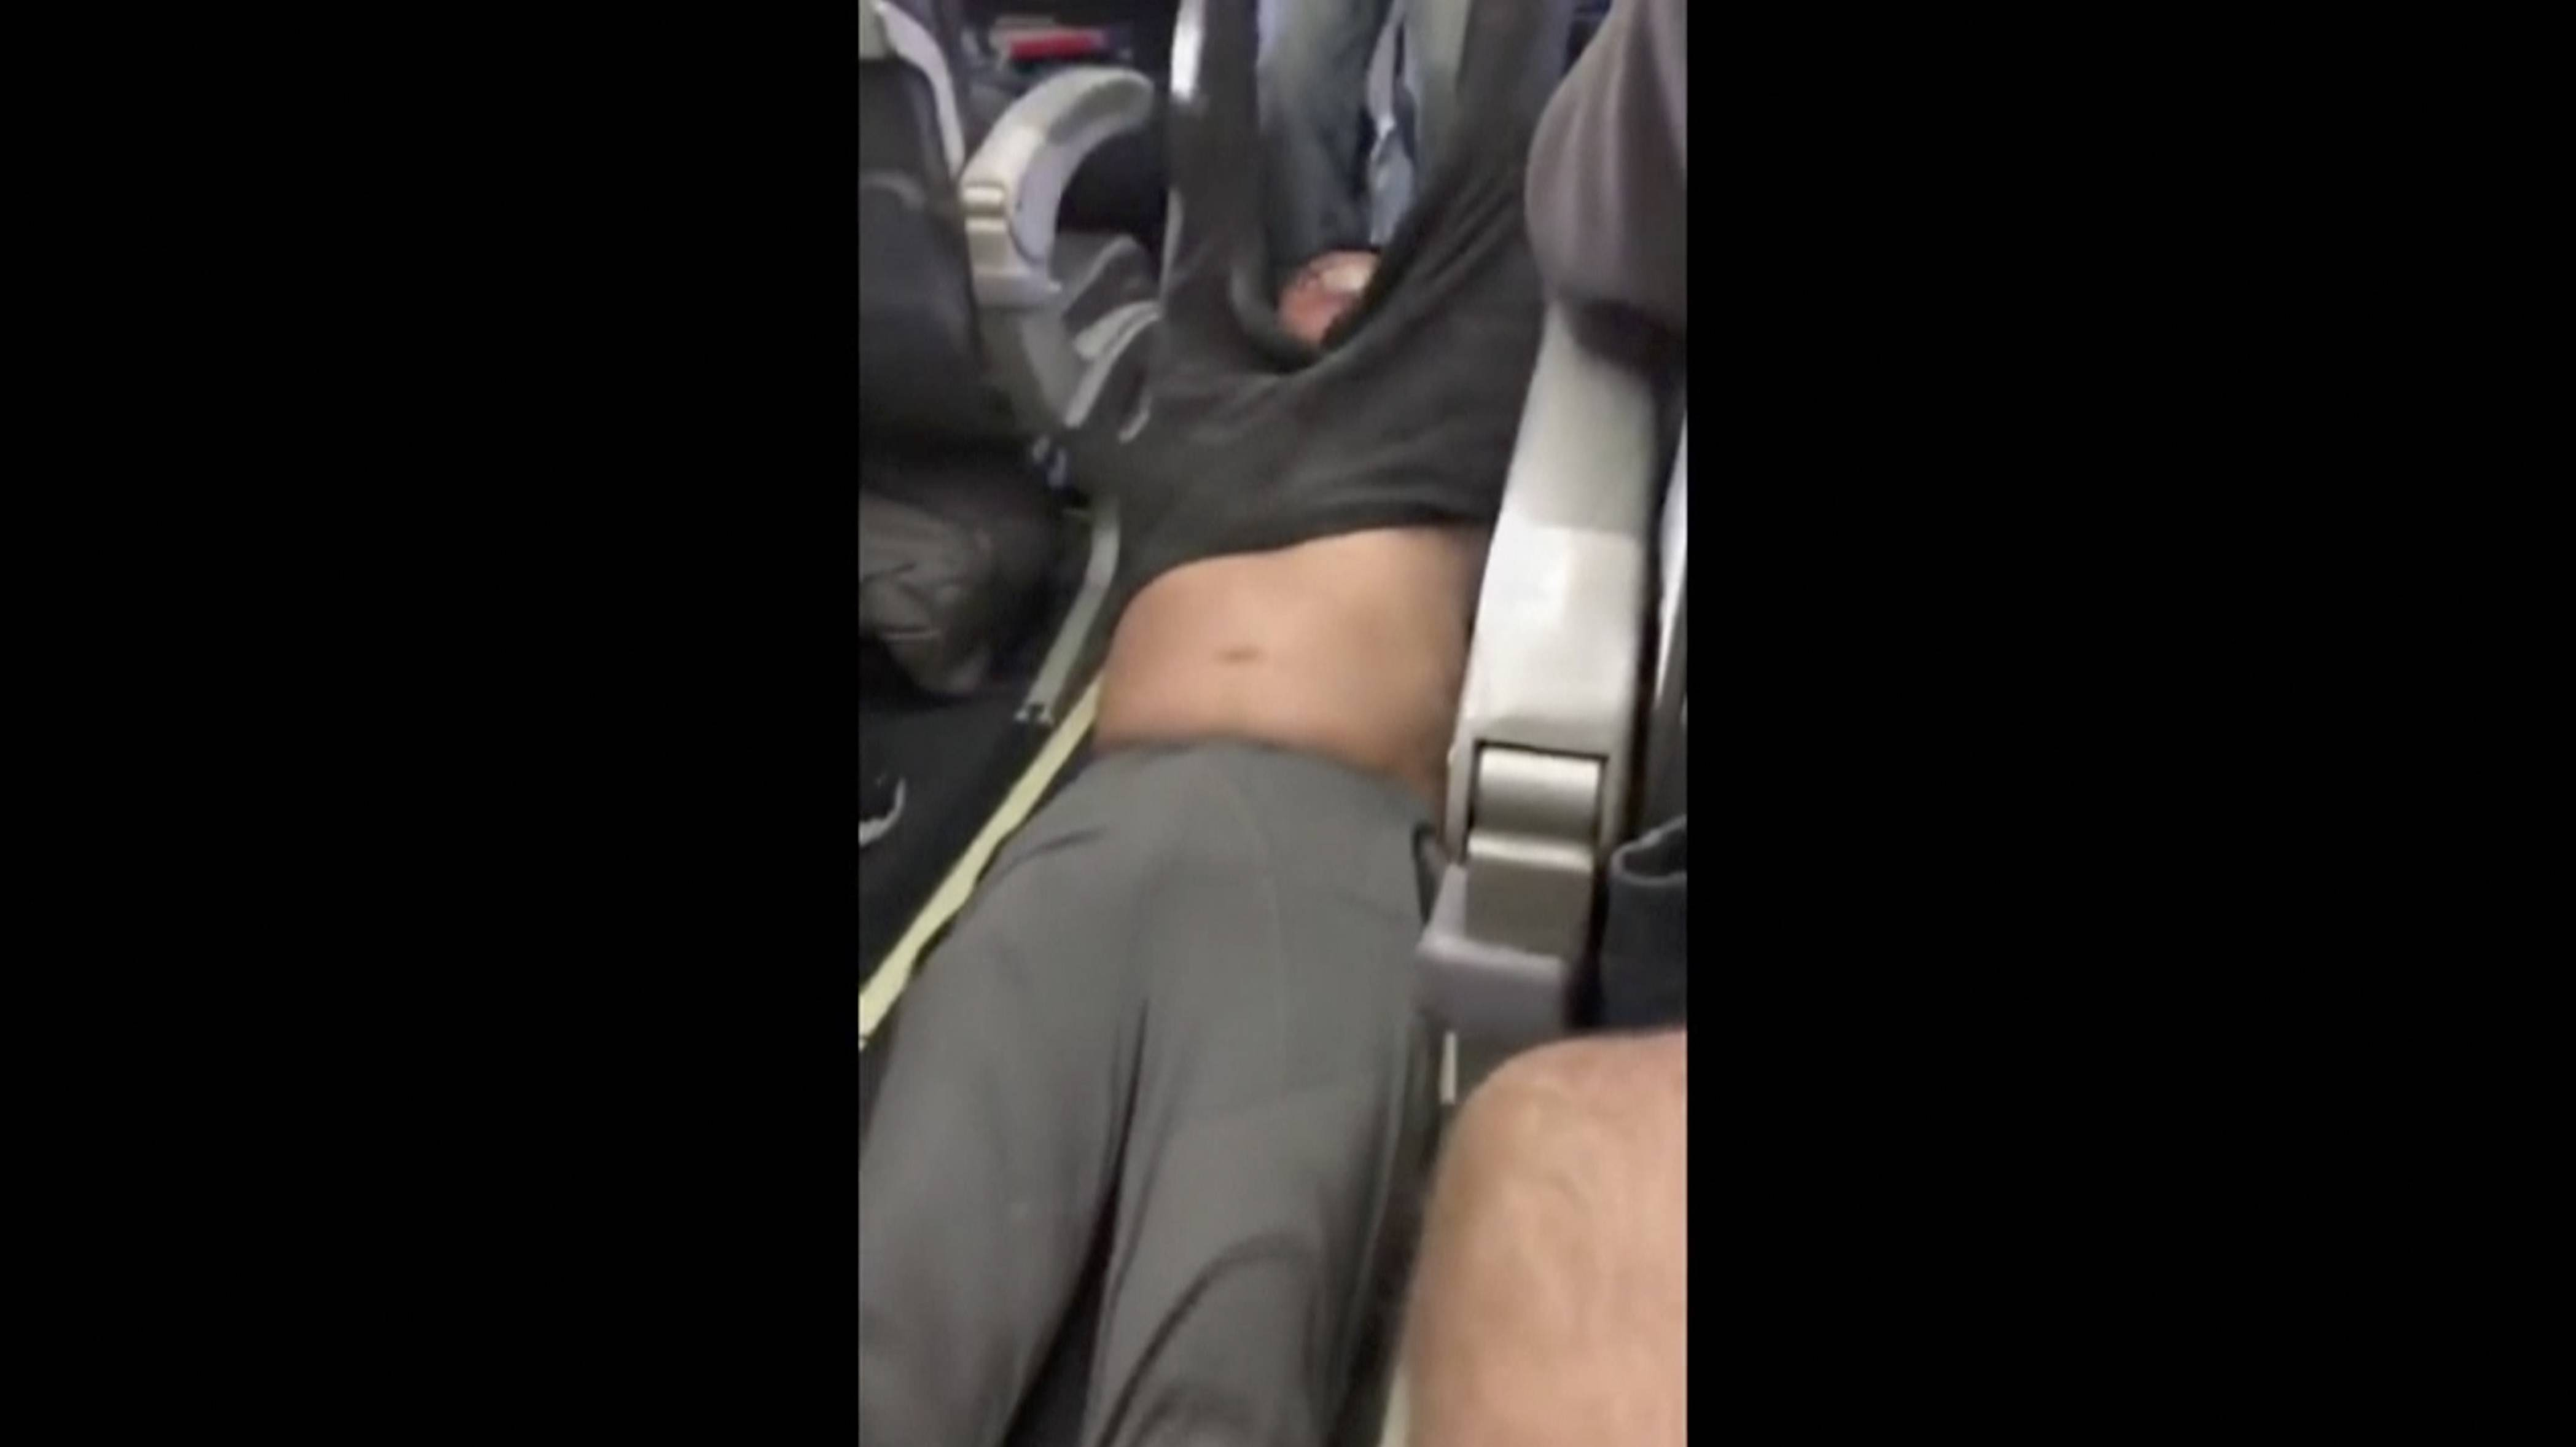 Chicago suspends more security officers after man dragged from United jet